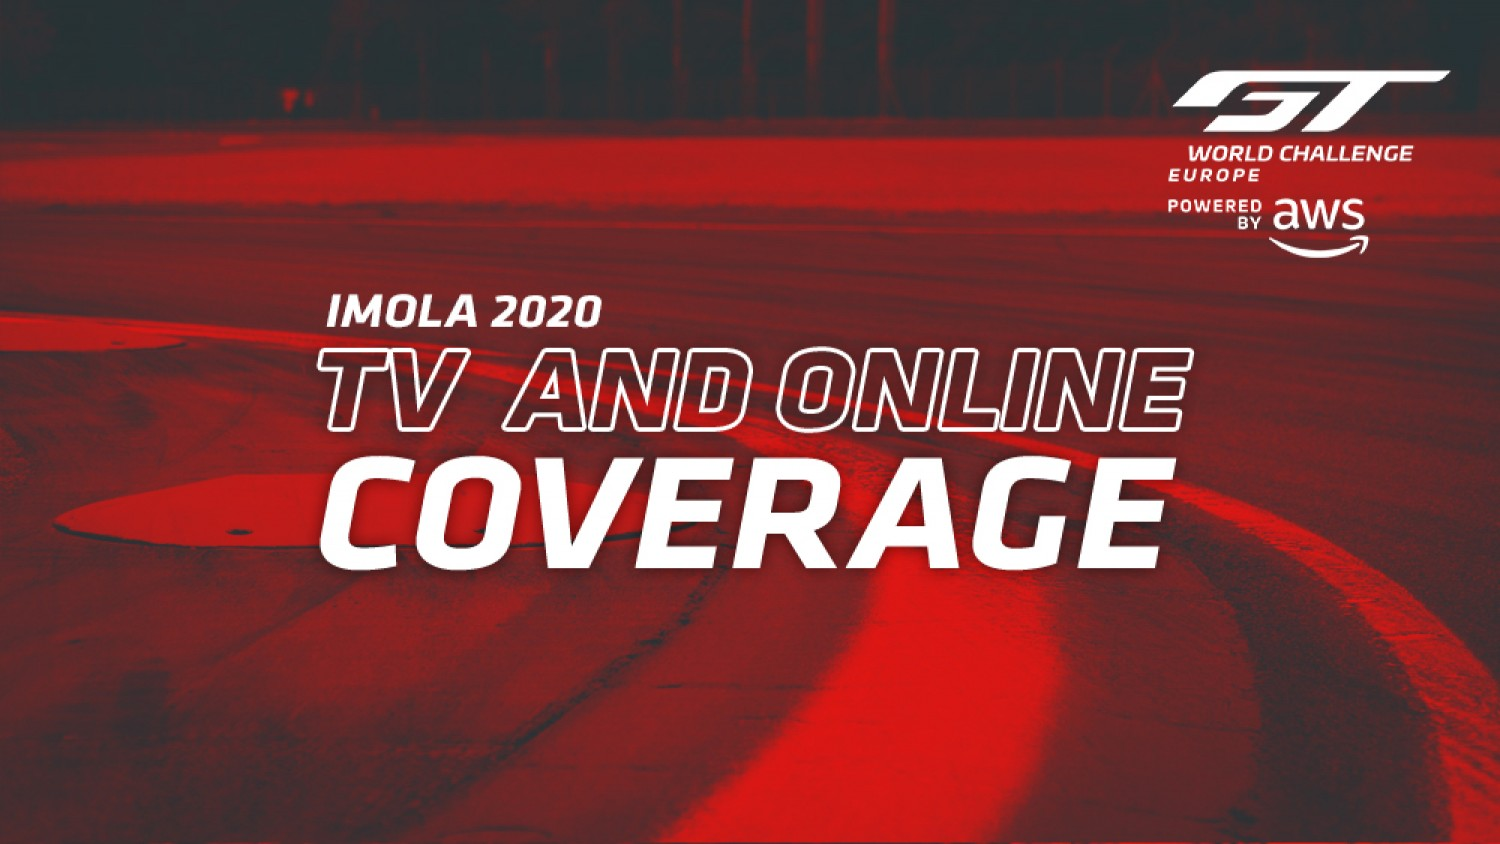 Comprehensive TV and online coverage confirmed for Endurance Cup opener at Imola